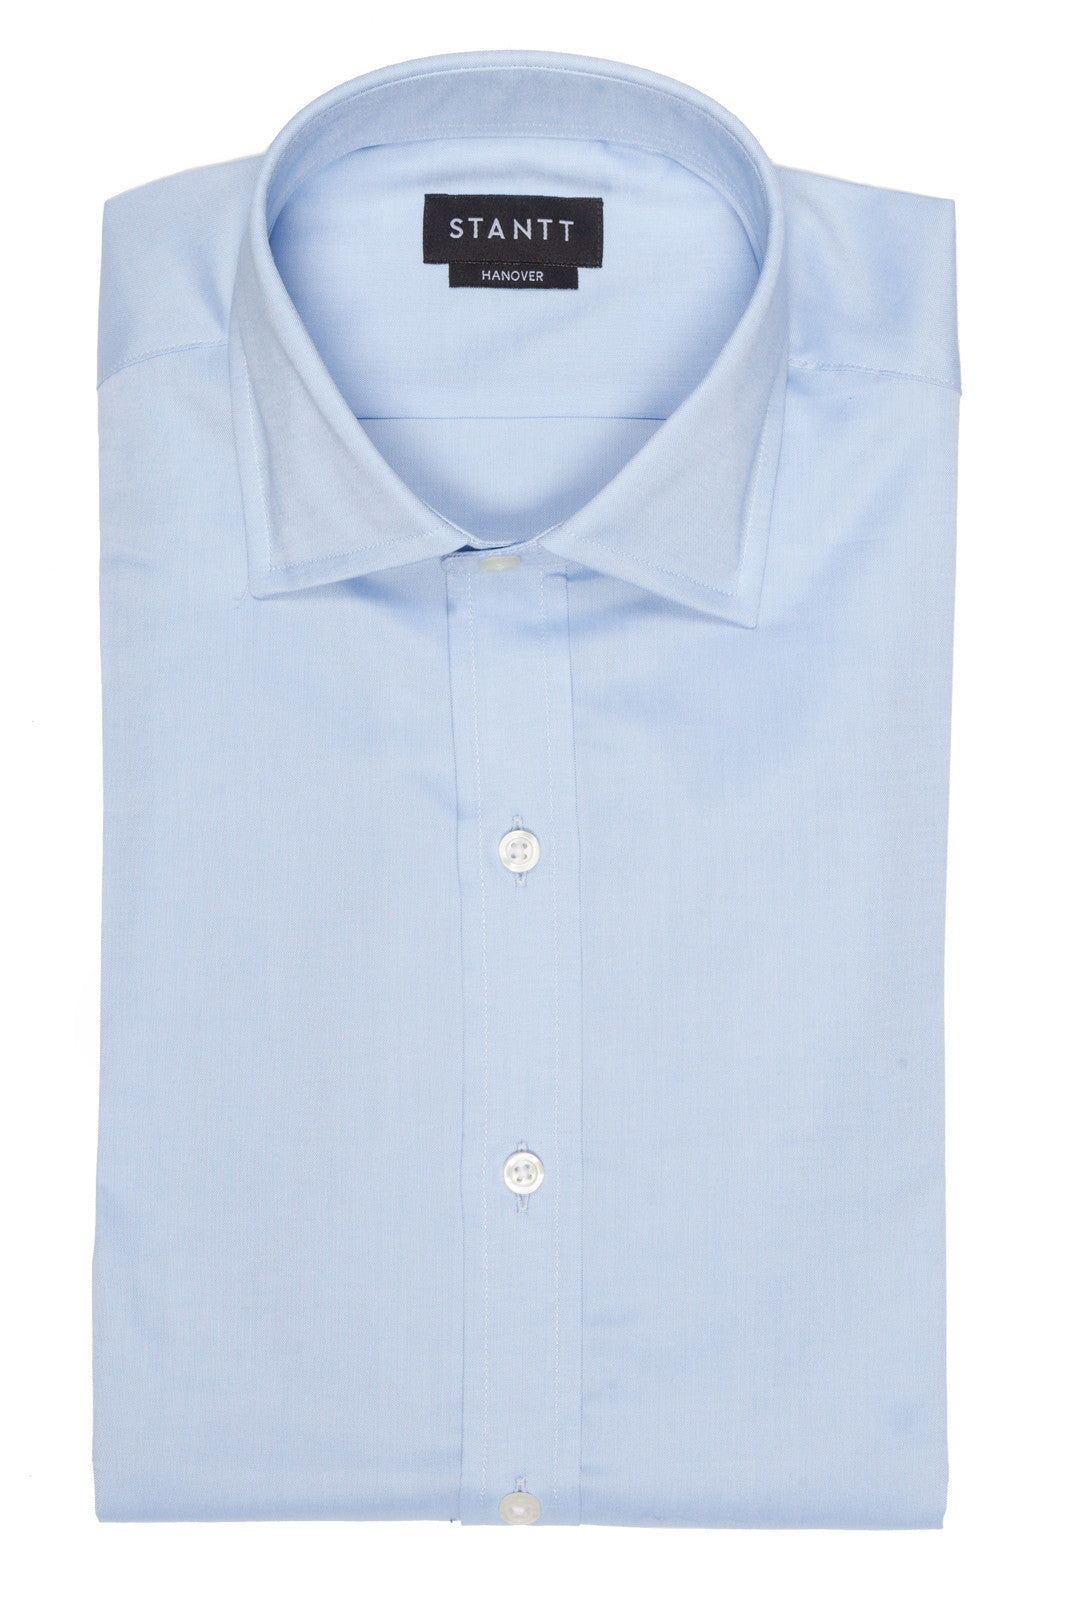 Light Blue Pinpoint Oxford: Button-Down Collar, Barrel Cuff